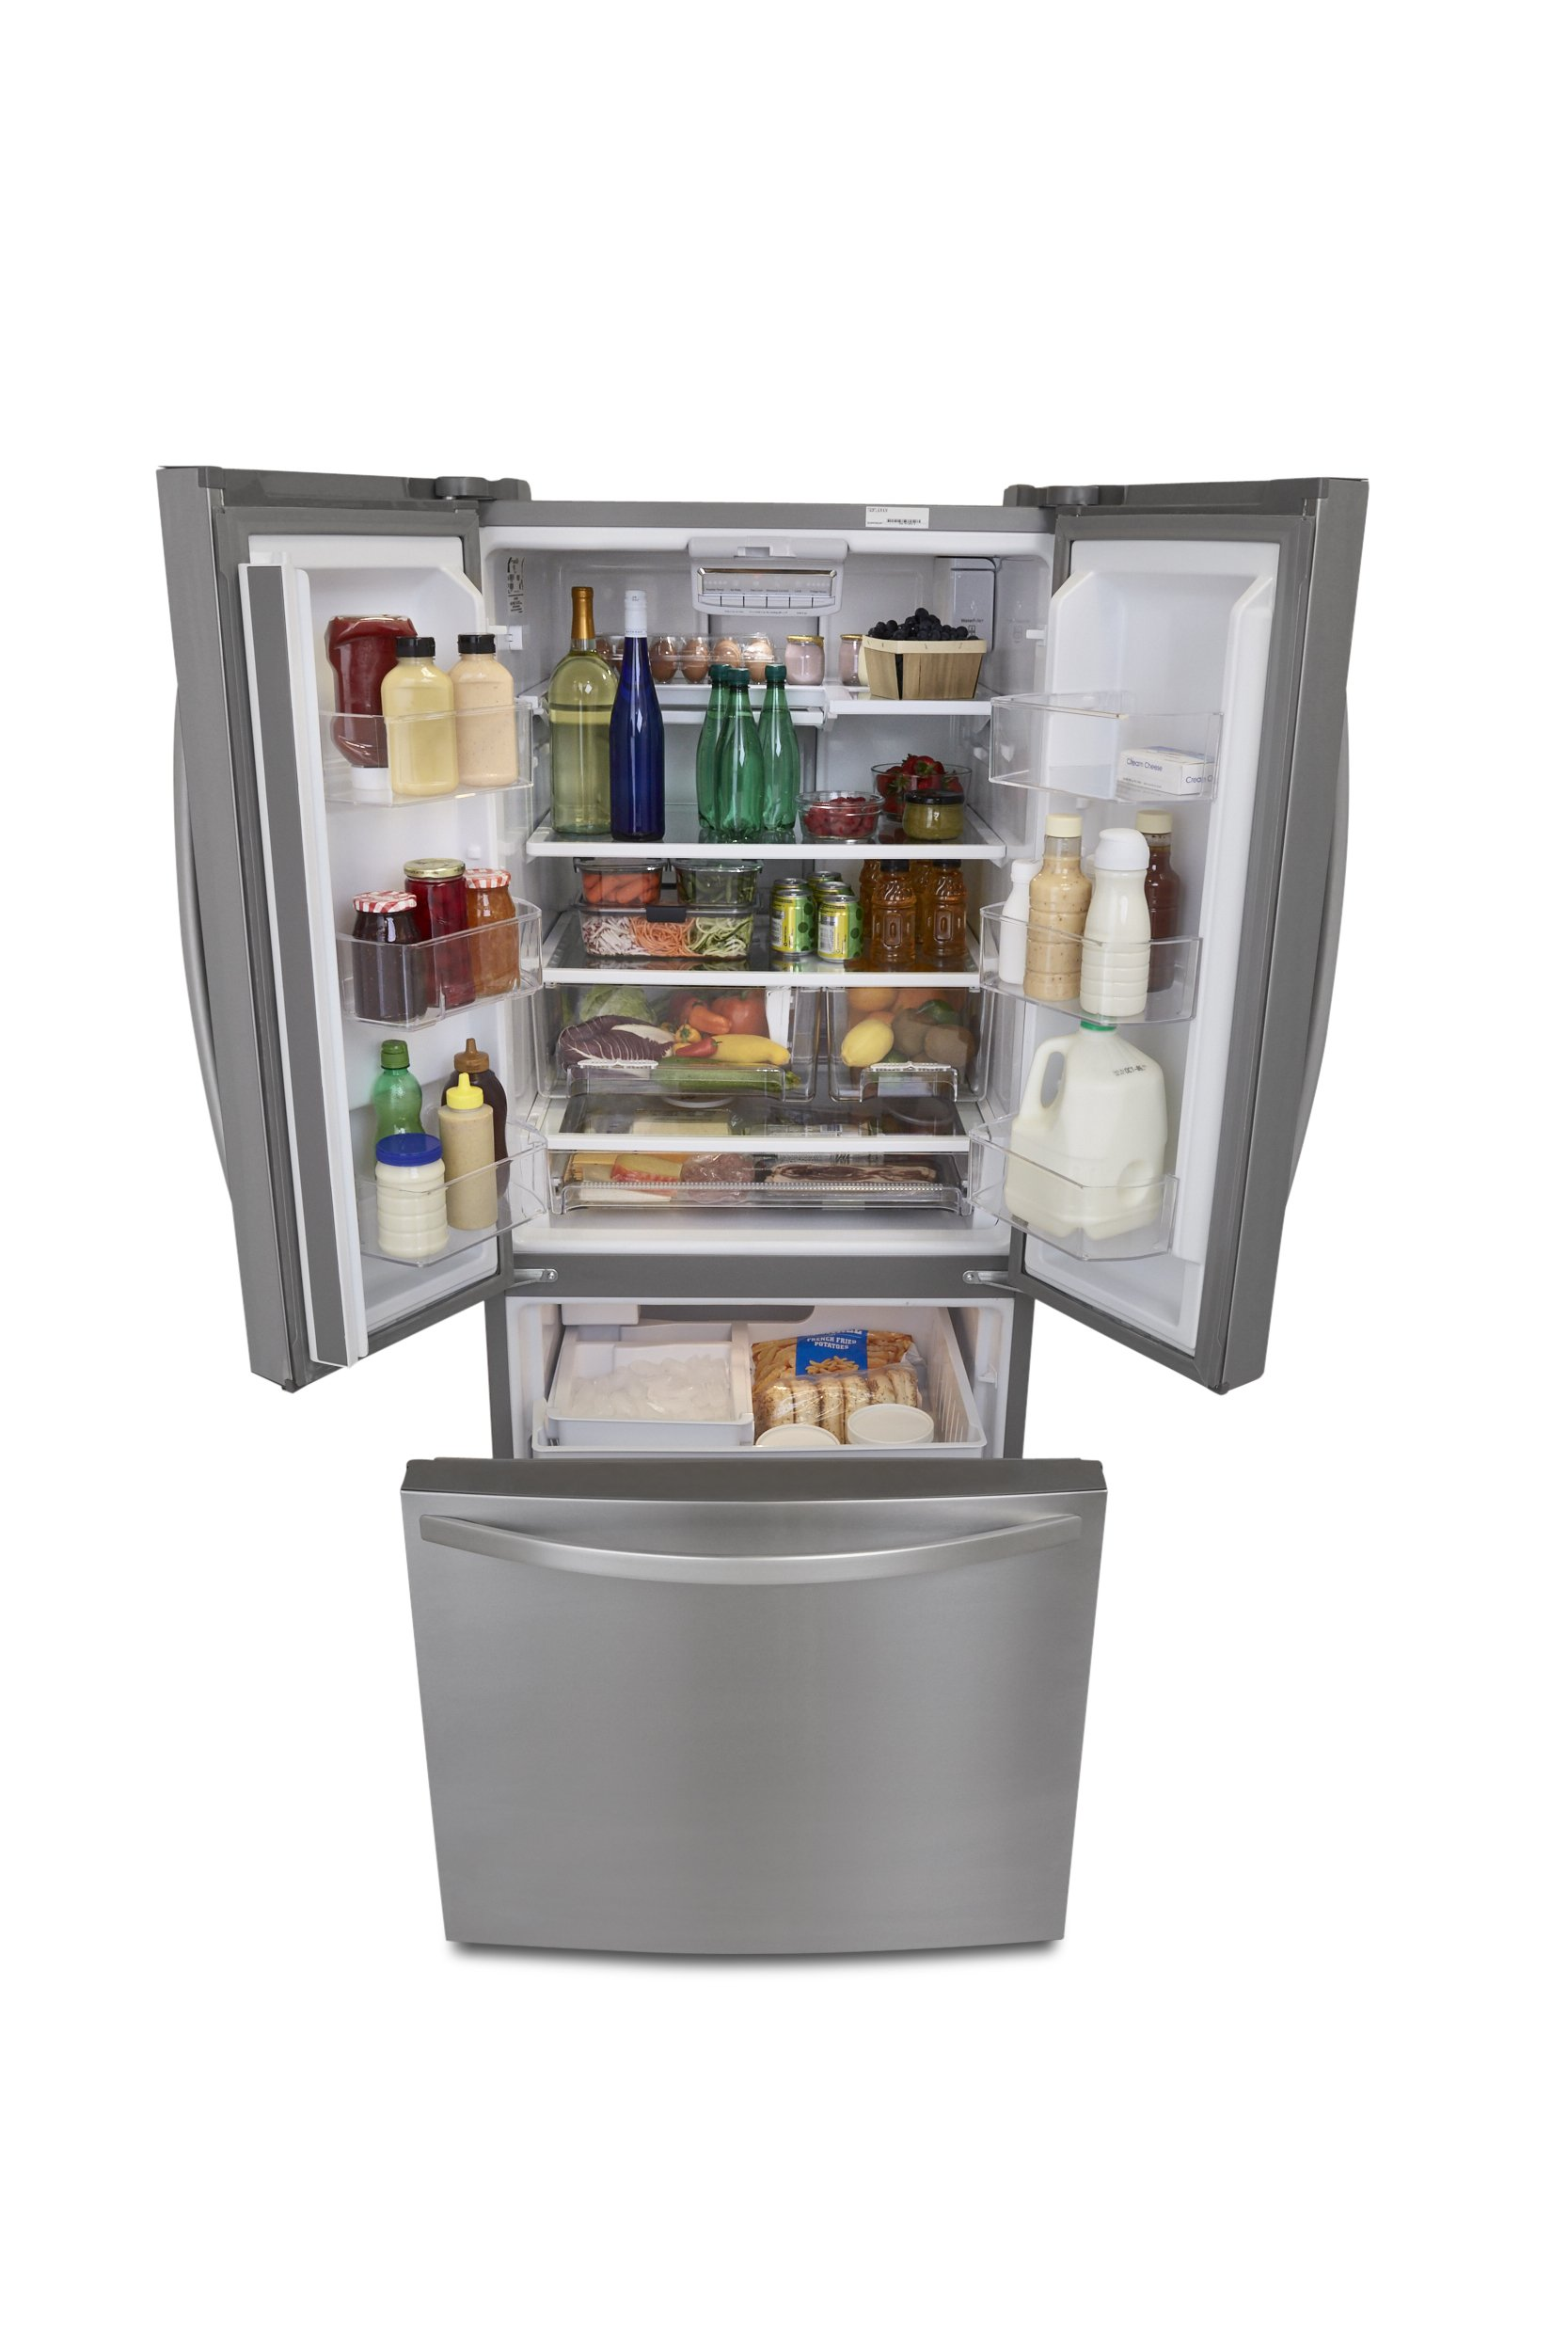 Kenmore 73003 19.5 cu. ft. Non-Dispense French Door Bottom-Freezer Refrigerator in Stainless Steel, includes delivery and hookup (Available in select cities only) by Kenmore (Image #5)